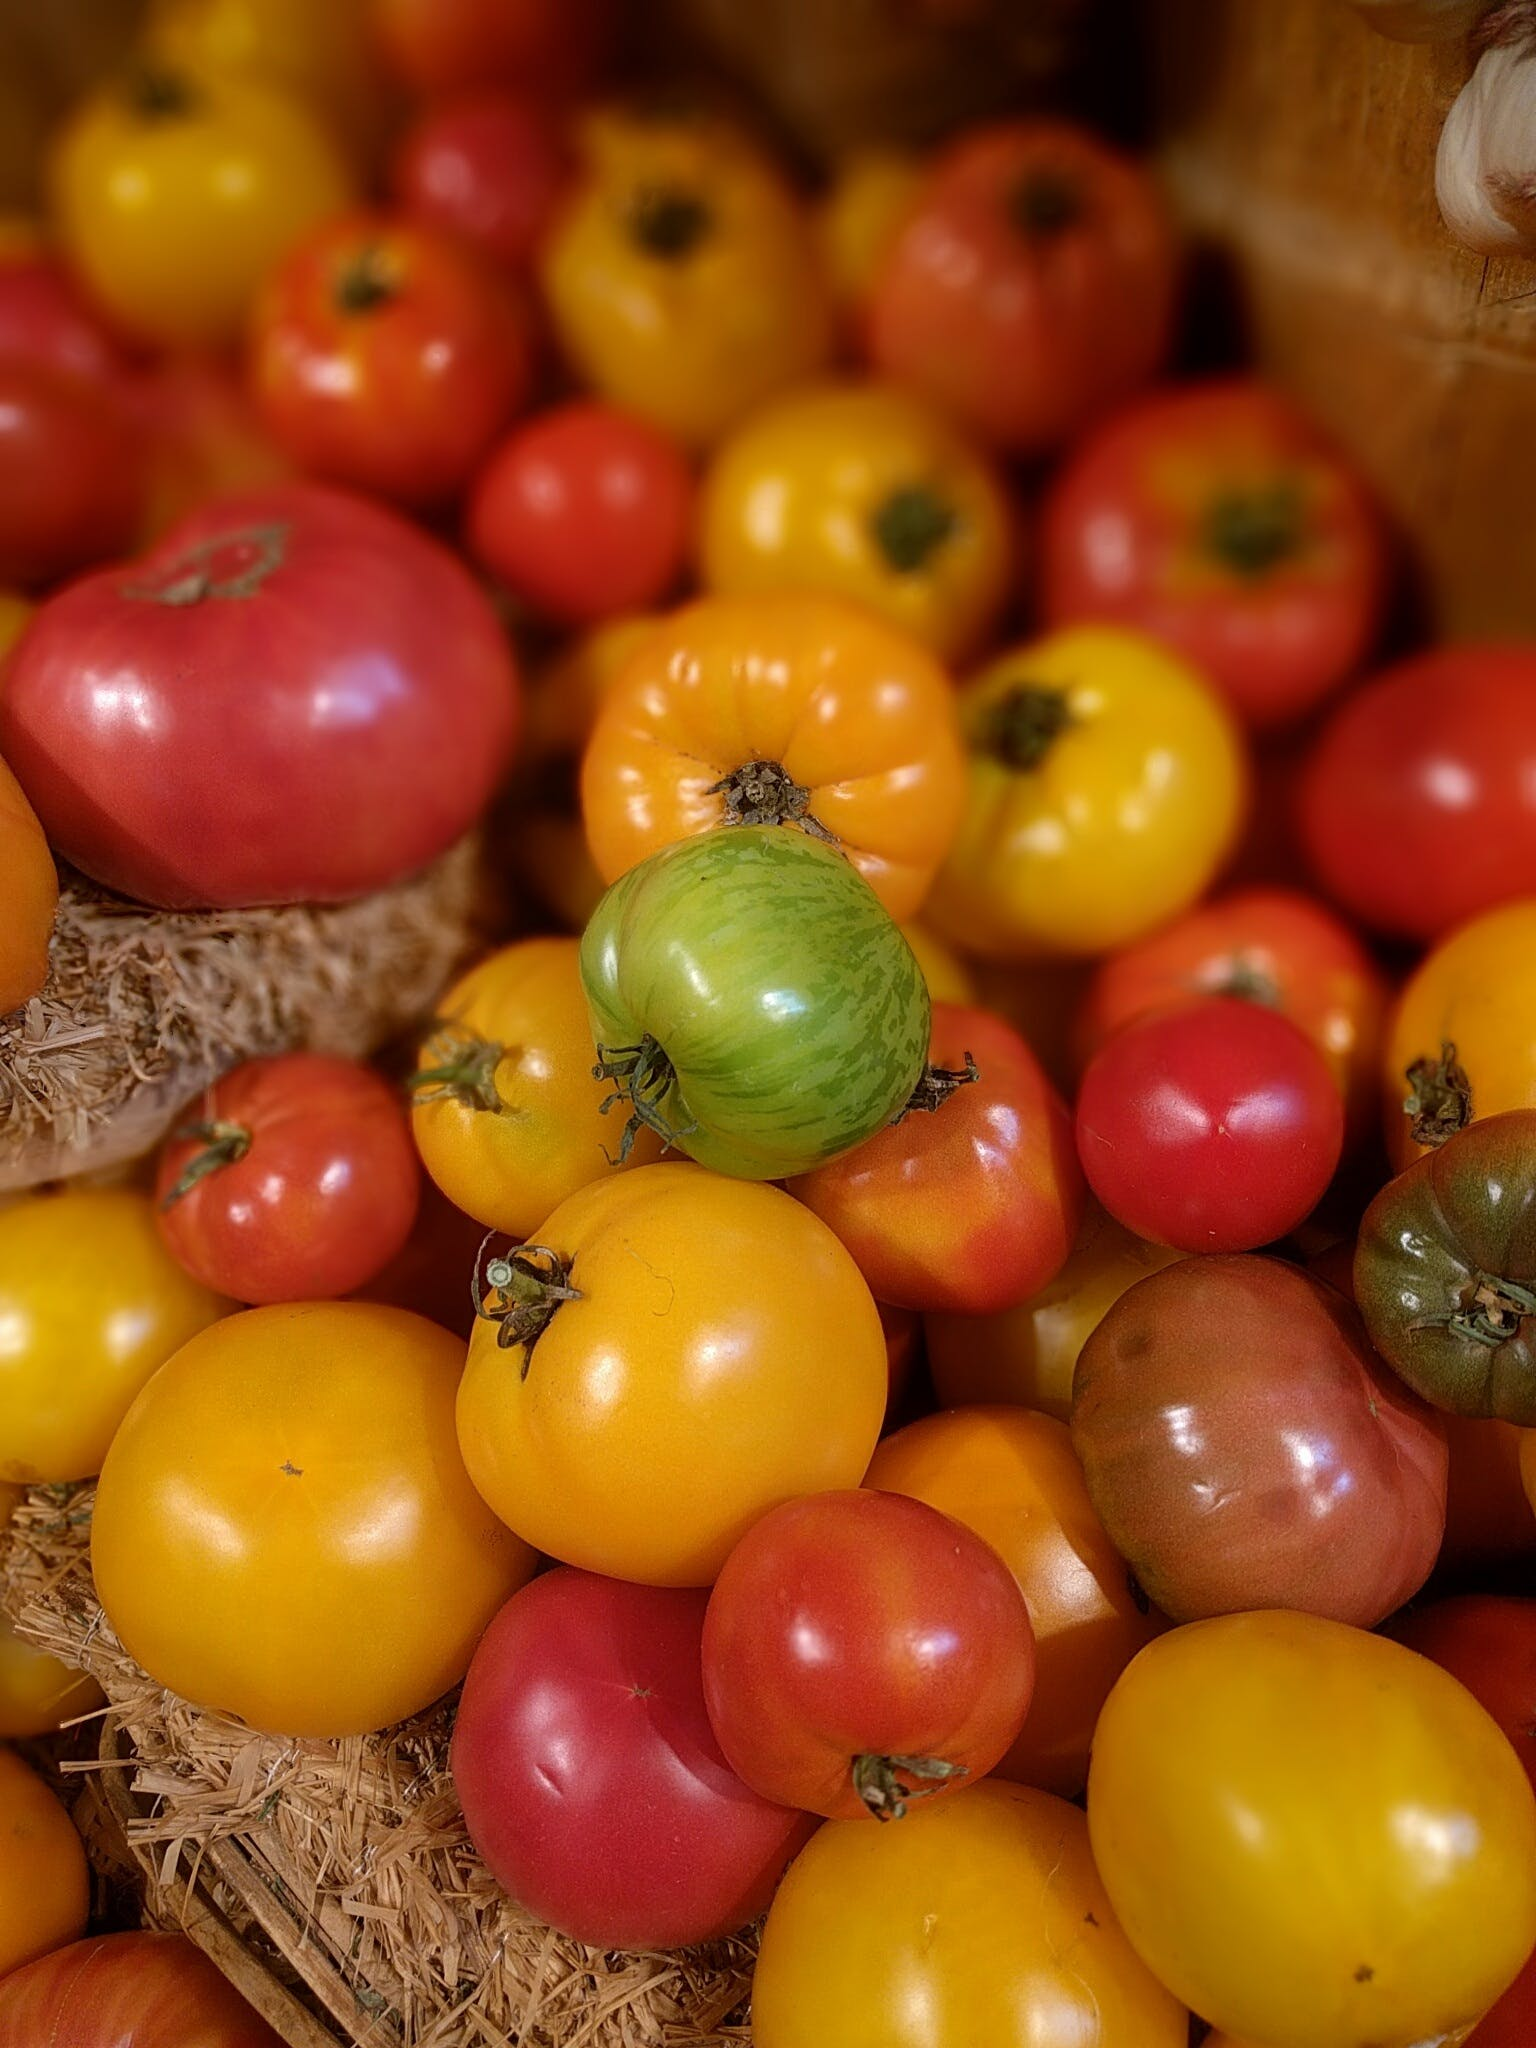 Riped and Unriped Tomatoes